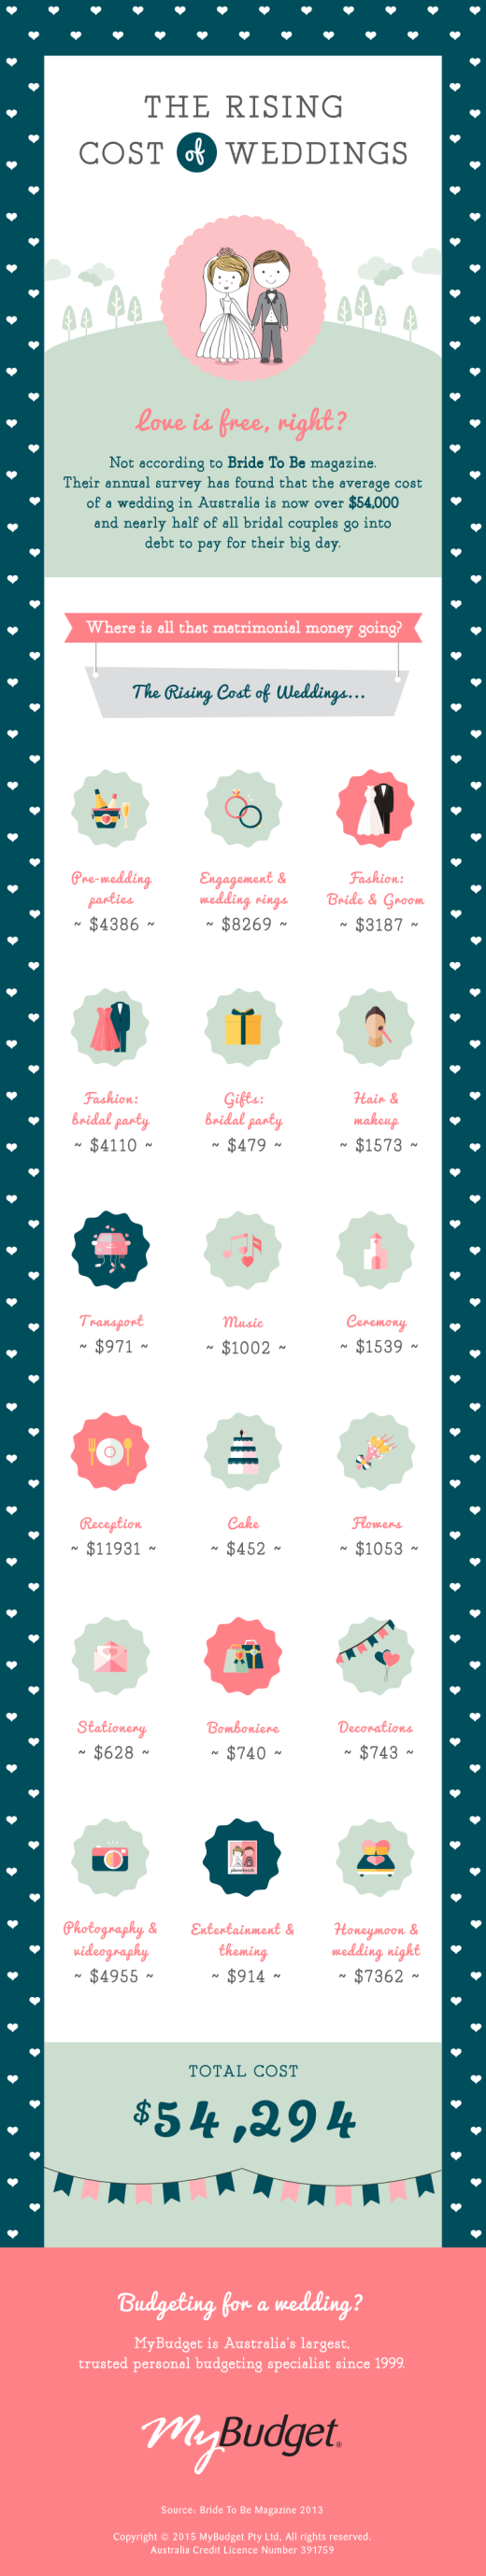 MyBudget Wedding Infographic Feb 2015